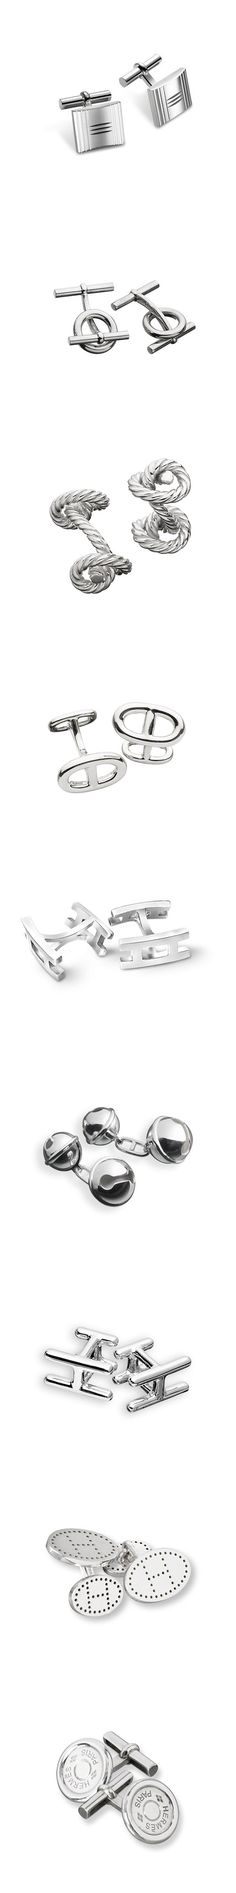 Which pair of Hermes cufflinks do you like?